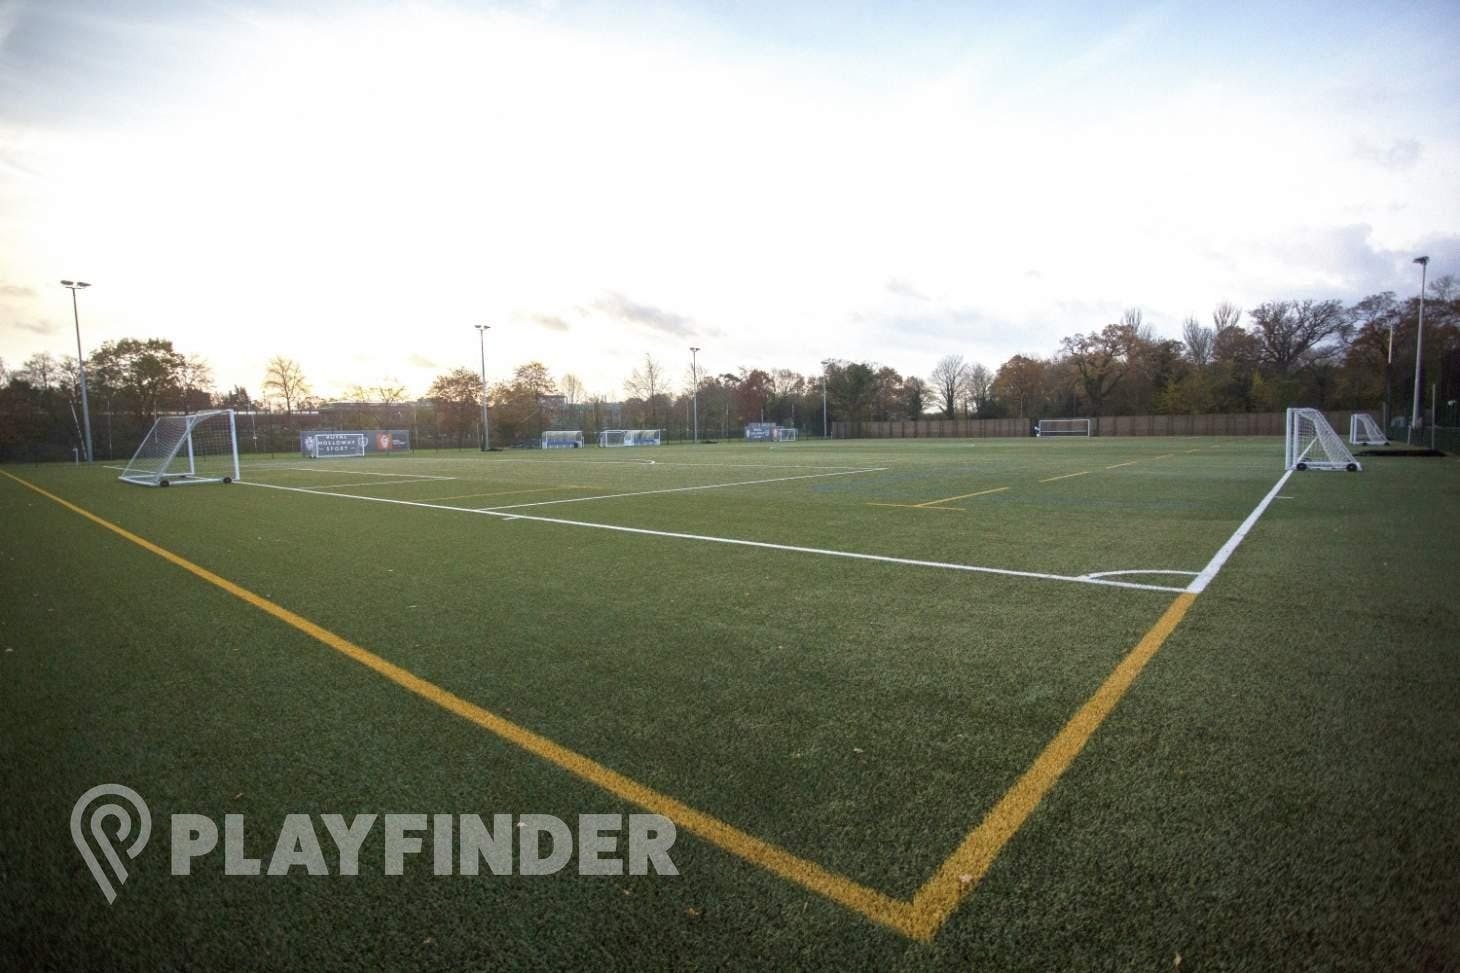 Royal Holloway University Sports Centre Union | 3G Astroturf rugby pitch